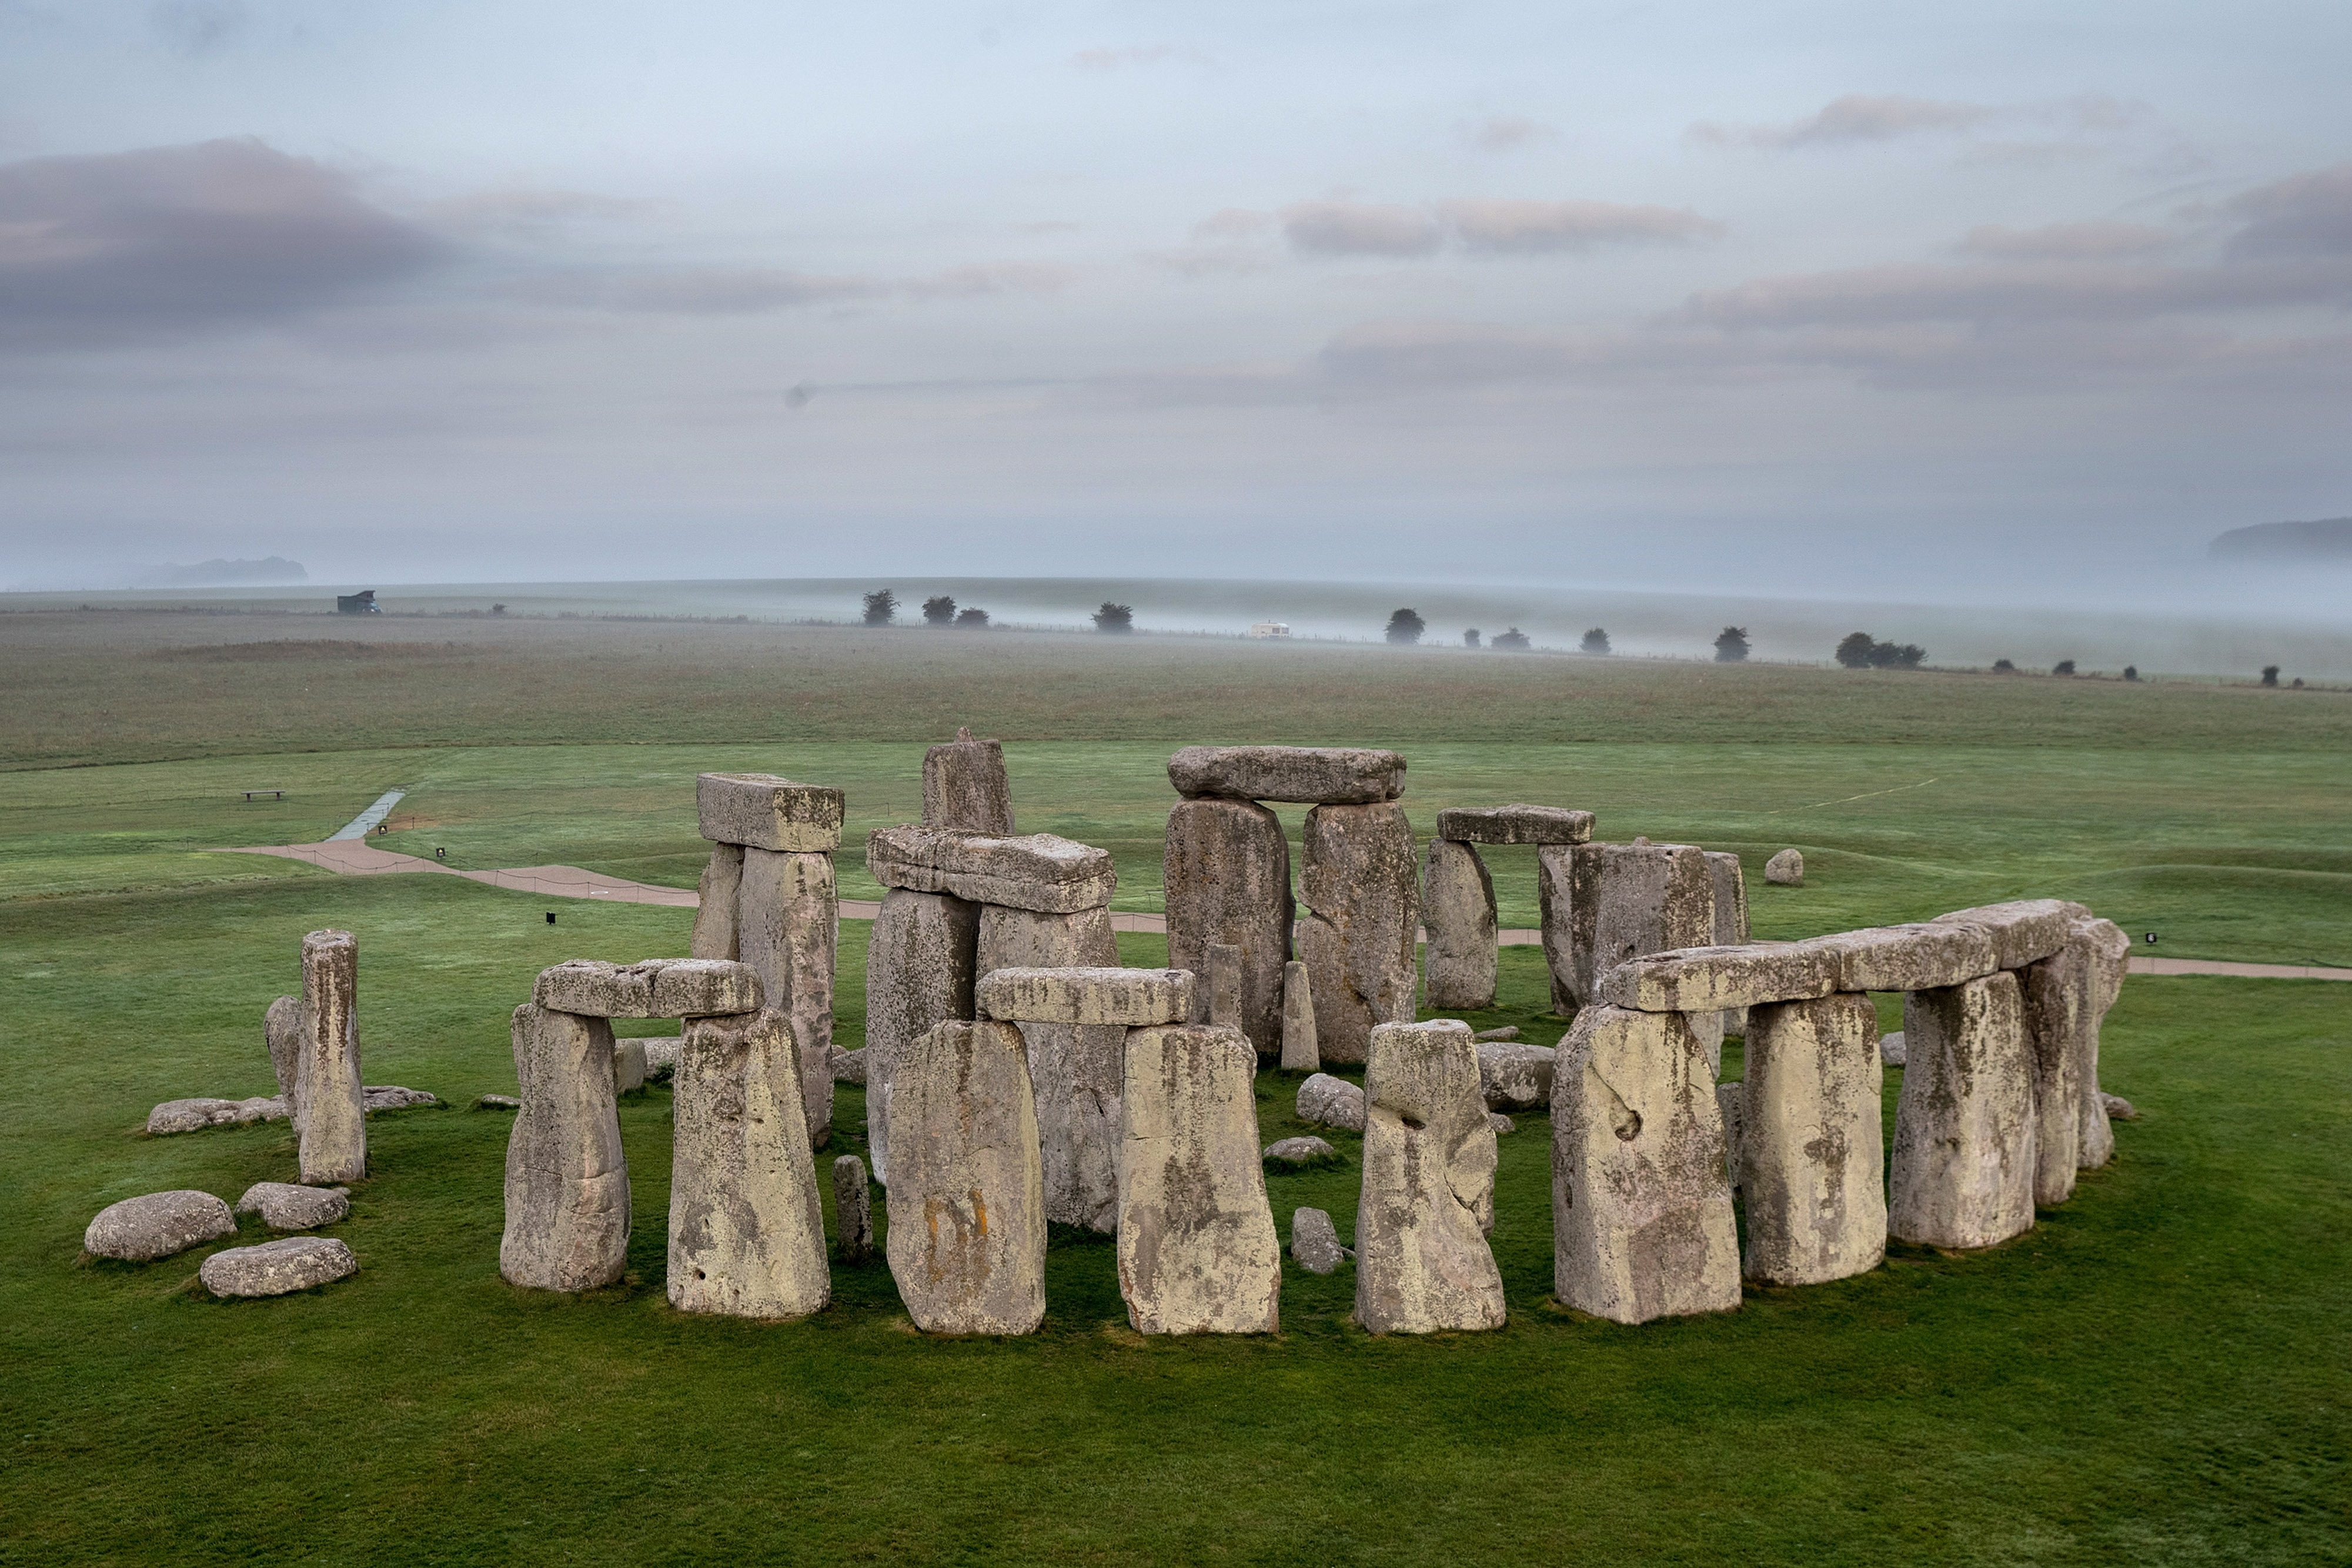 The ancient neolithic monument of Stonehenge in Wiltshire, England. (Matt Cardy/Getty Images)